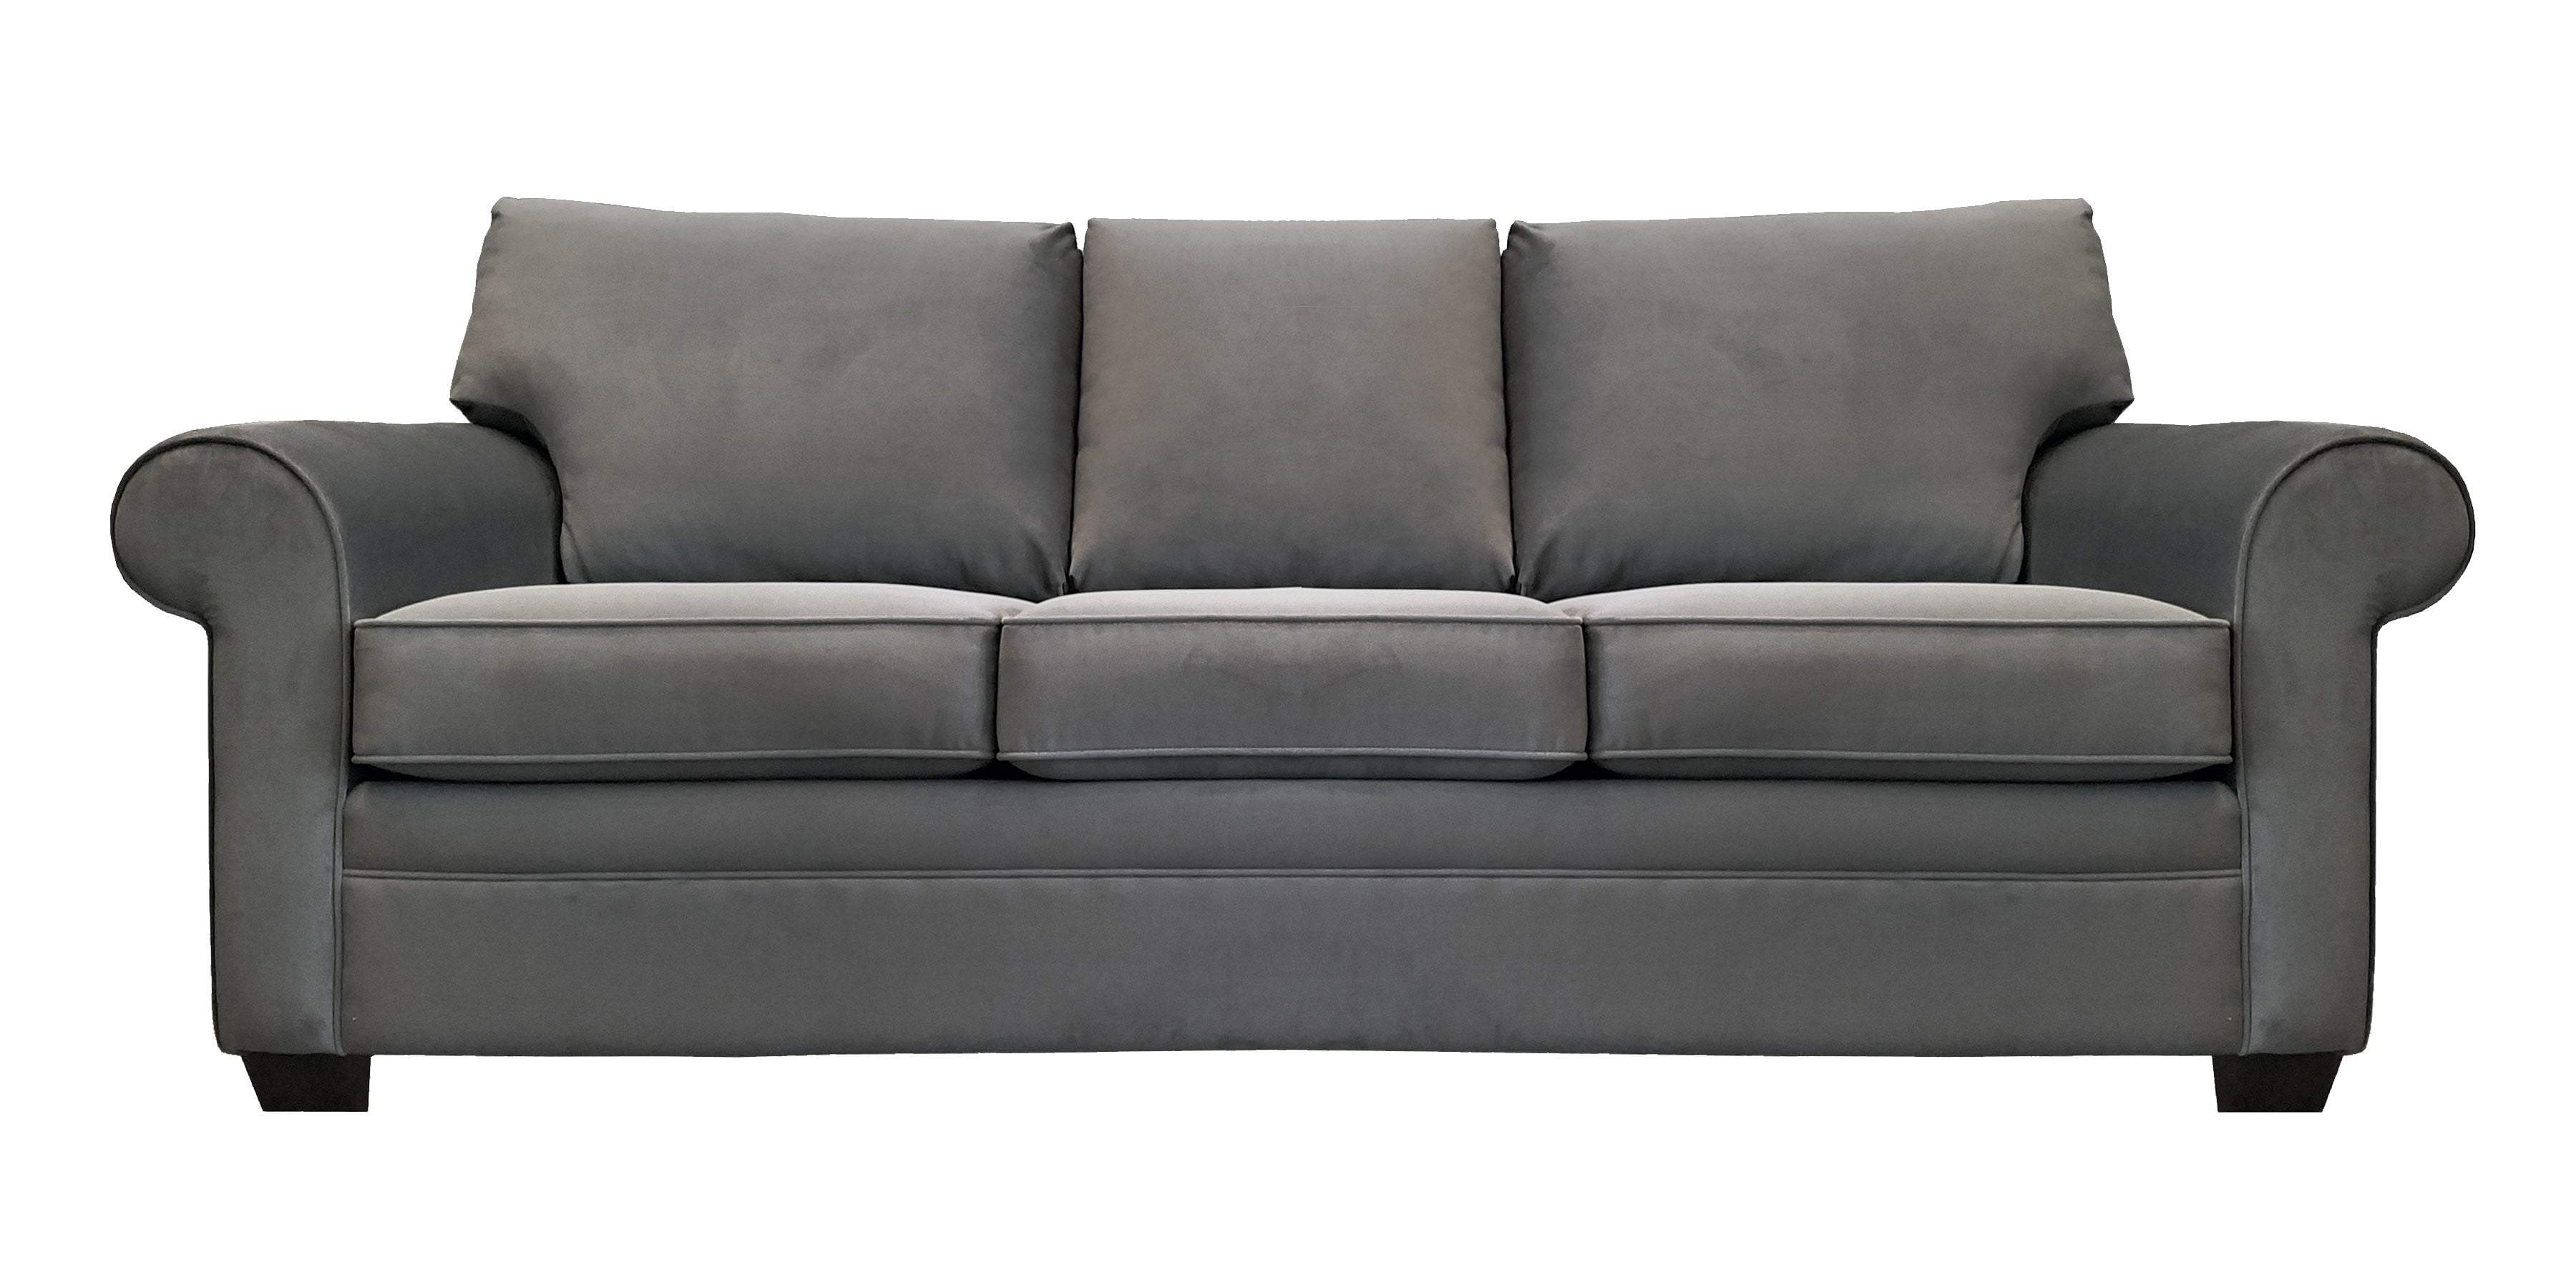 Austin Sofa - sofacreations